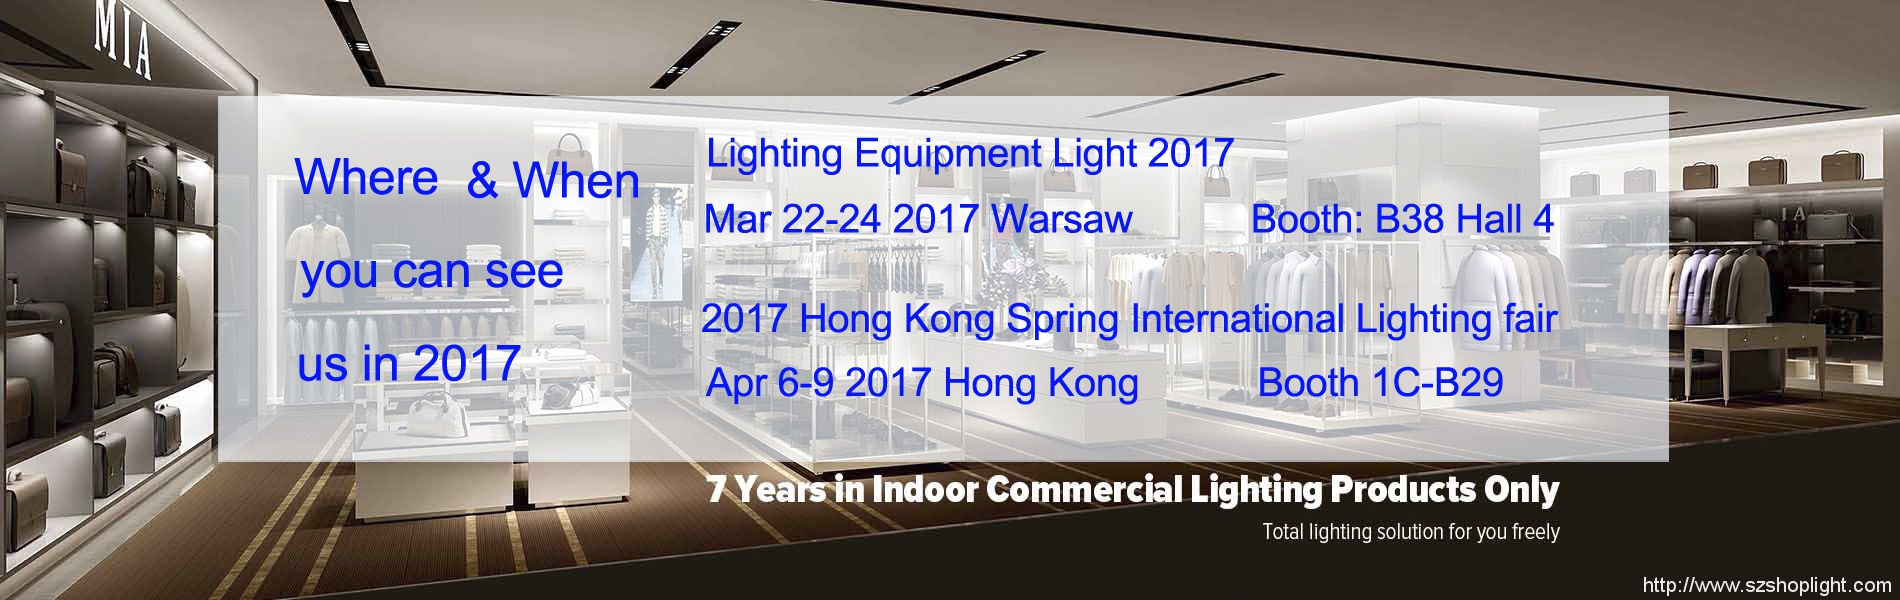 Xinghuo lighting fair